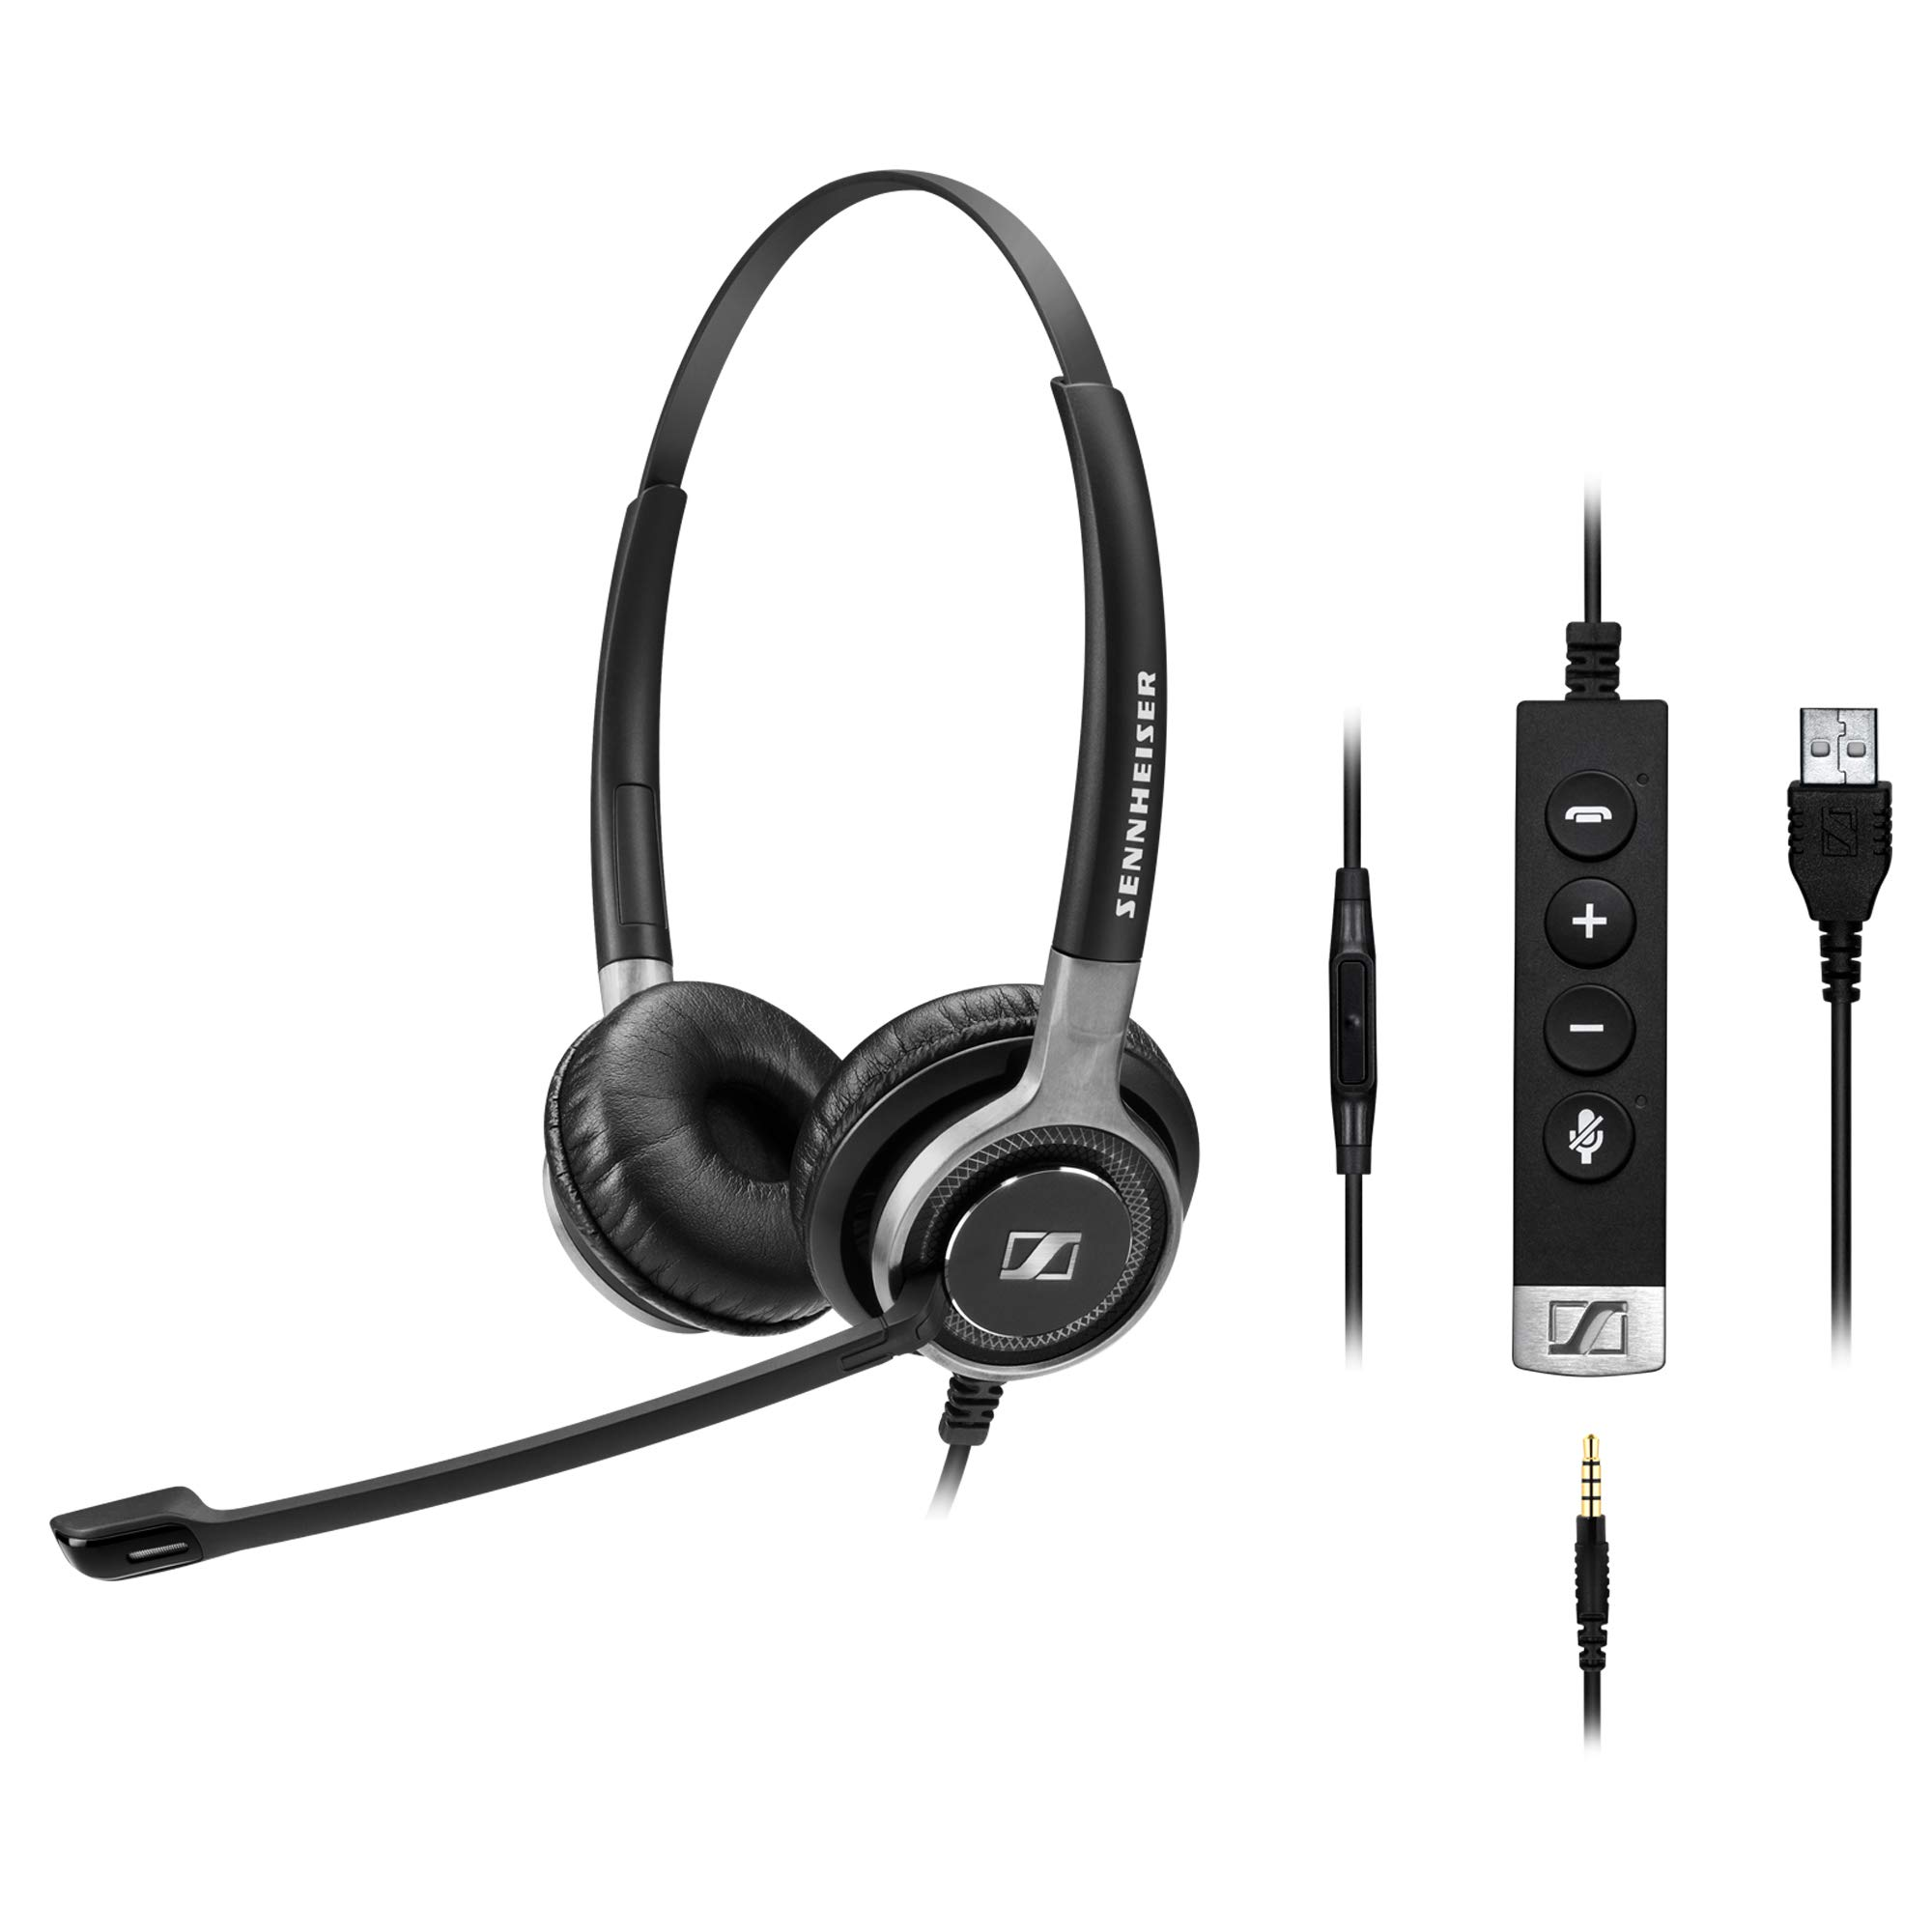 Sennheiser SC 665 USB (507257) - Double-Sided Business Headset | UC Optimized and Skype for Business Certified | For Mobile Phone, Tablet, Softphone, and PC (Black)